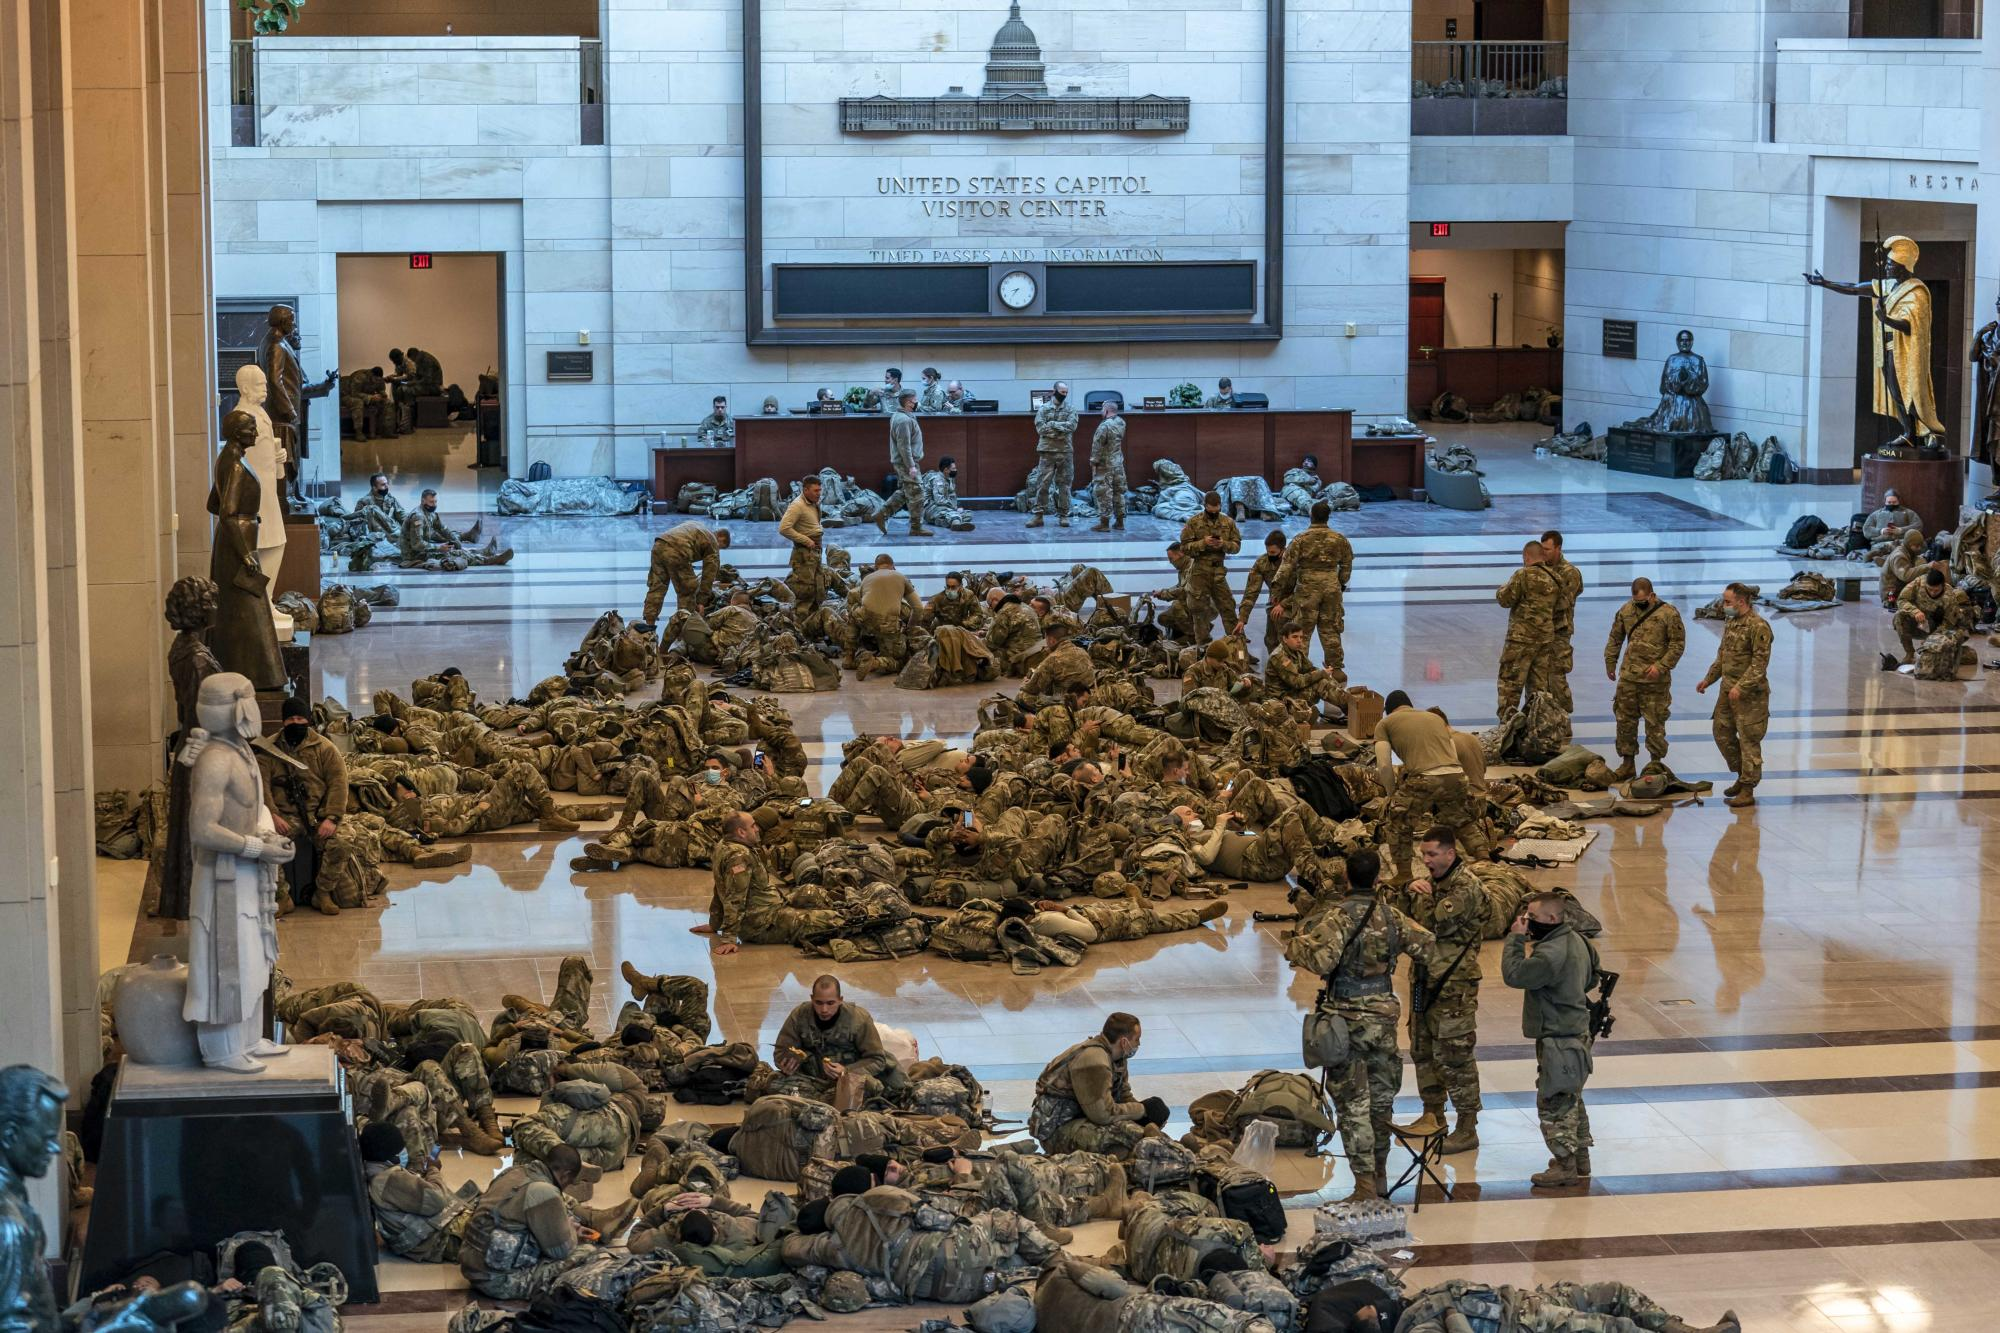 Democrats urge Army to send cots for troops sleeping in Capitol